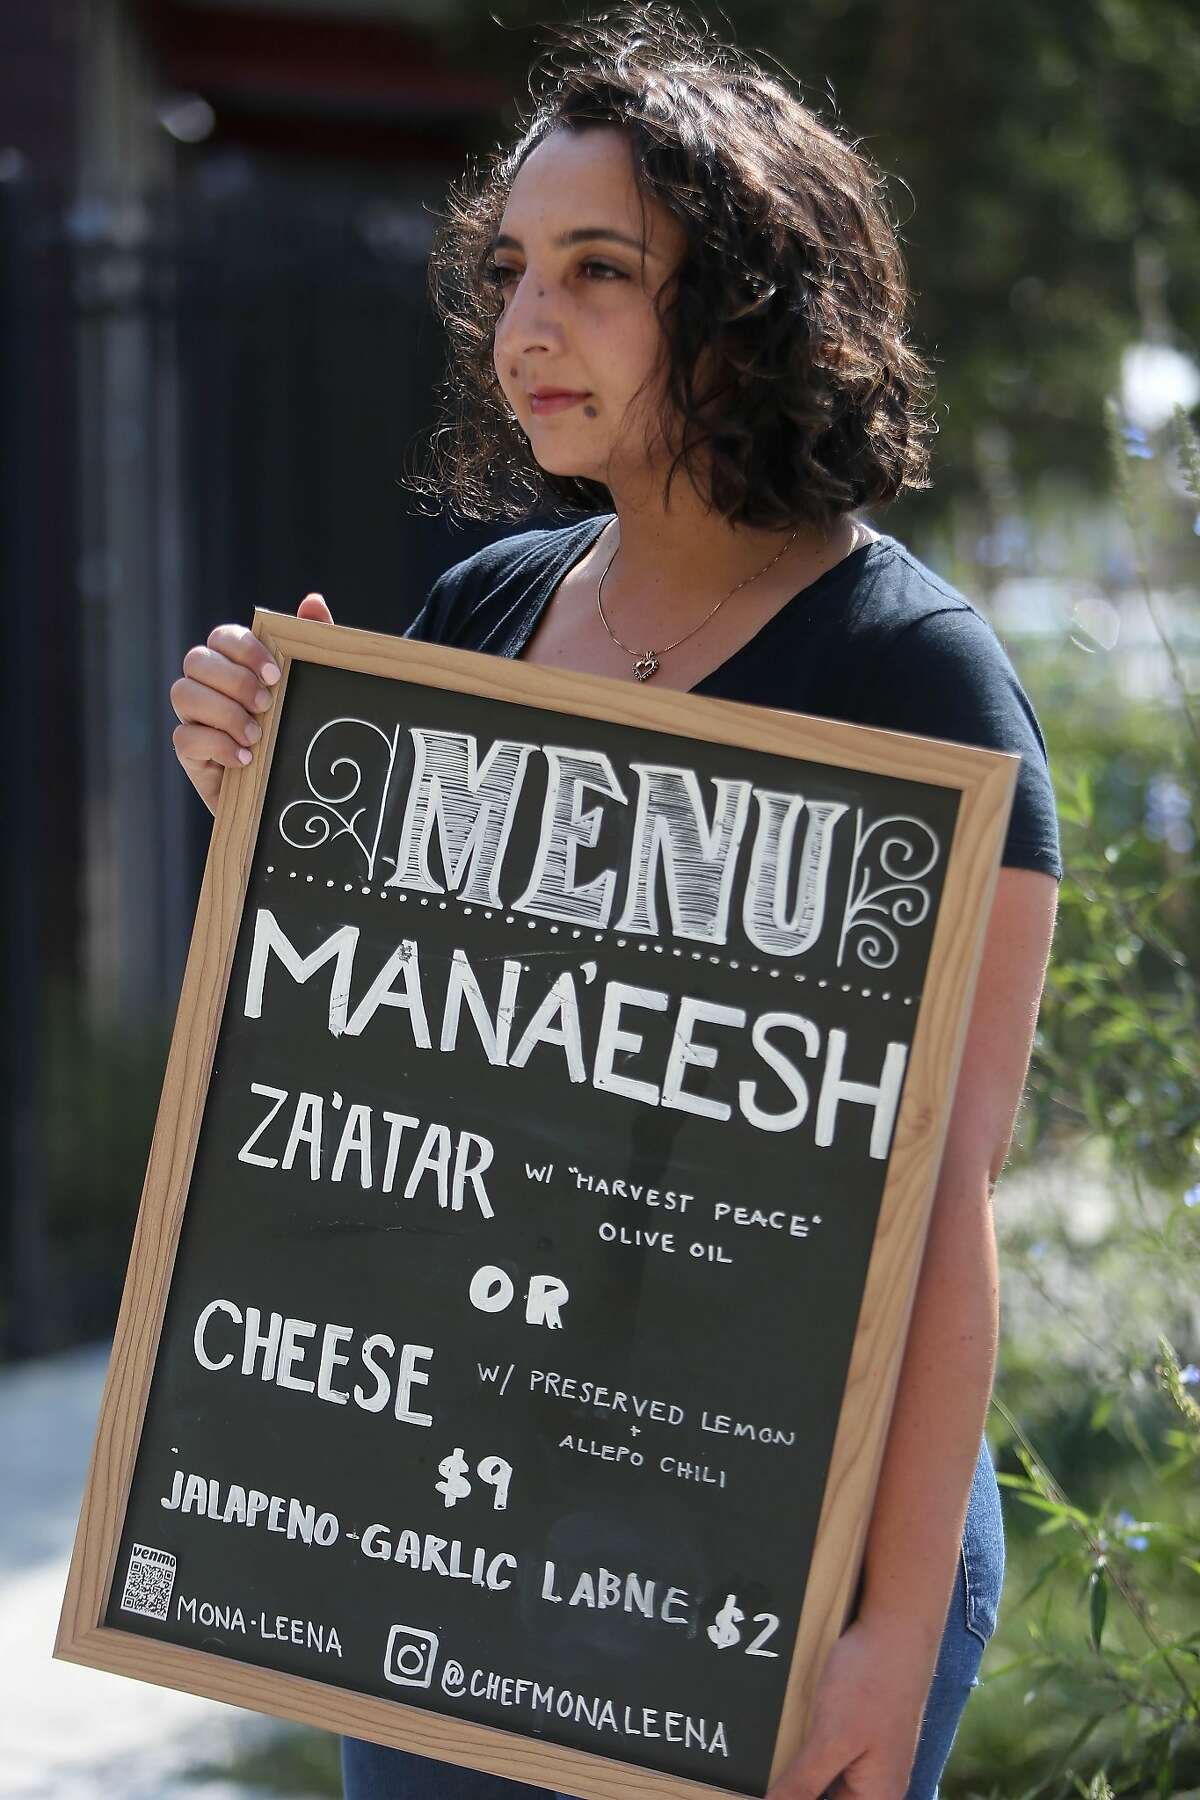 Mona Leena Michael of Oakland stands for a portrait outside the Bakery Lofts on Wednesday, September 16, 2020 in Oakland Calif. Michael, who is a chef, was selling flatbreads and other foods in front of her live/ work space at a pop up in Oakland before the health department shut her down for lack of a permit.